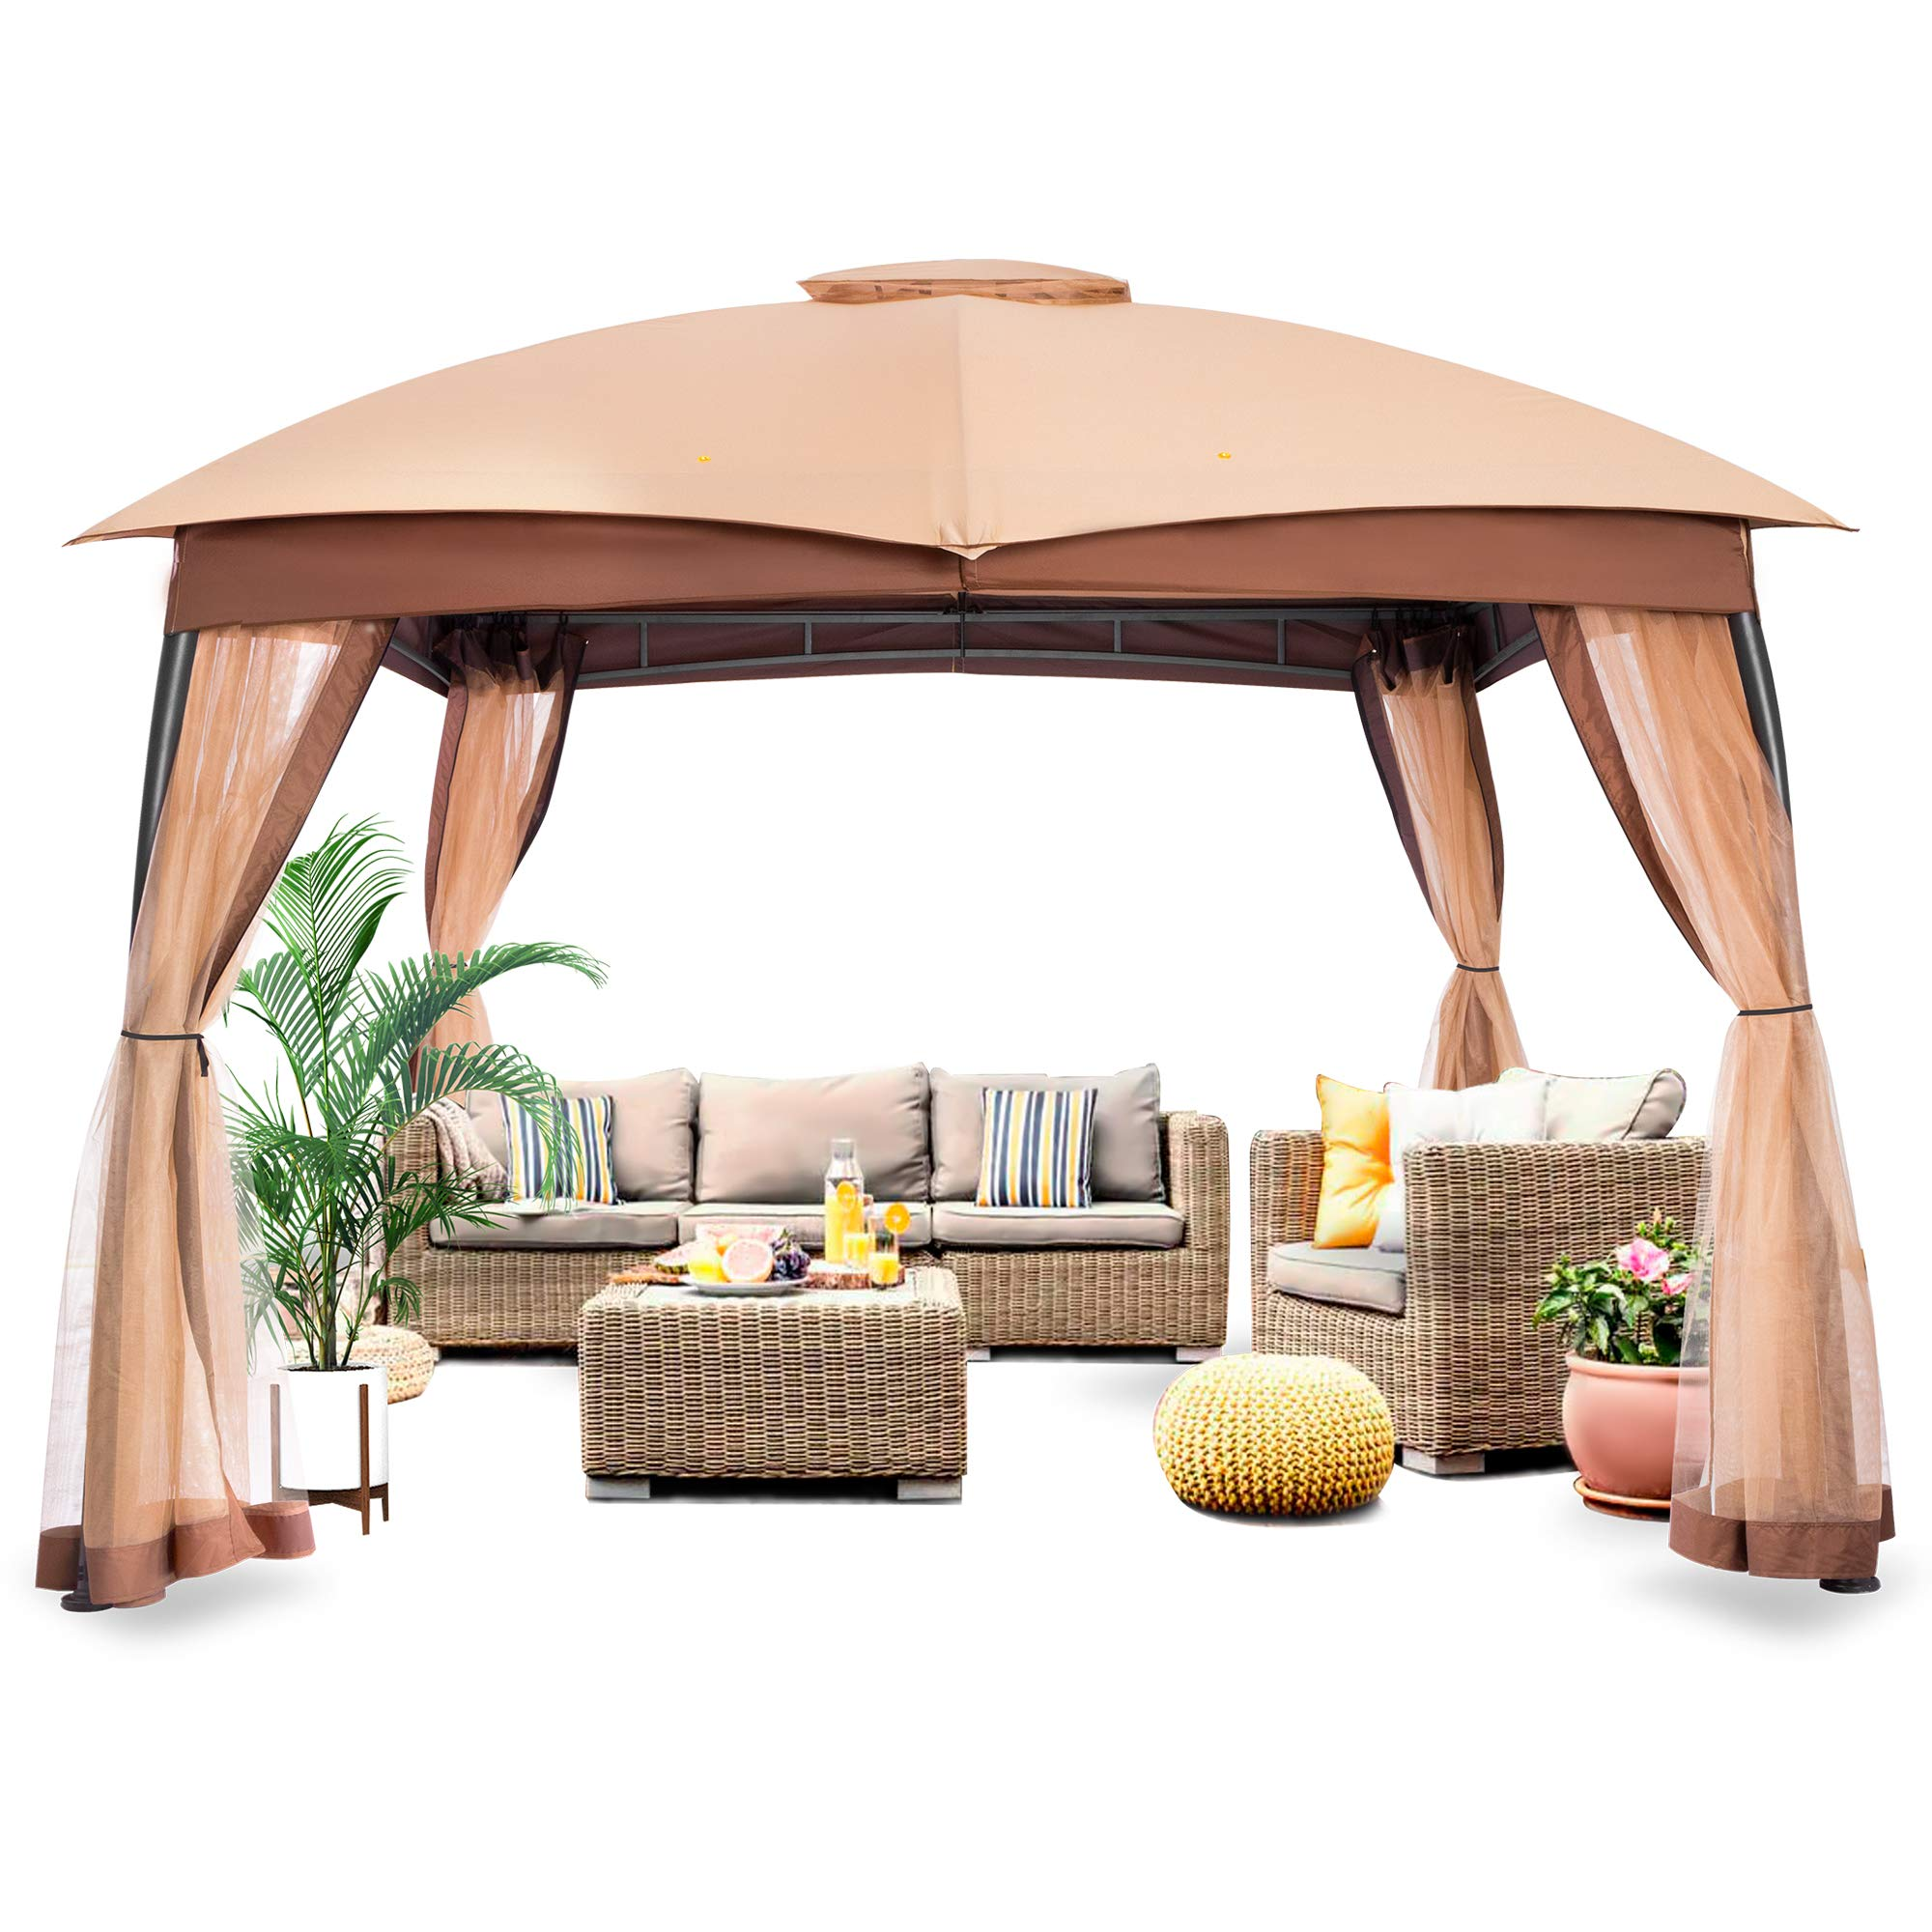 FAB BASED 10x10 Gazebo for Patio, Outdoor Gazebos and Canopies Waterproof, Canopy Patio with Mosquito Netting,Khaki